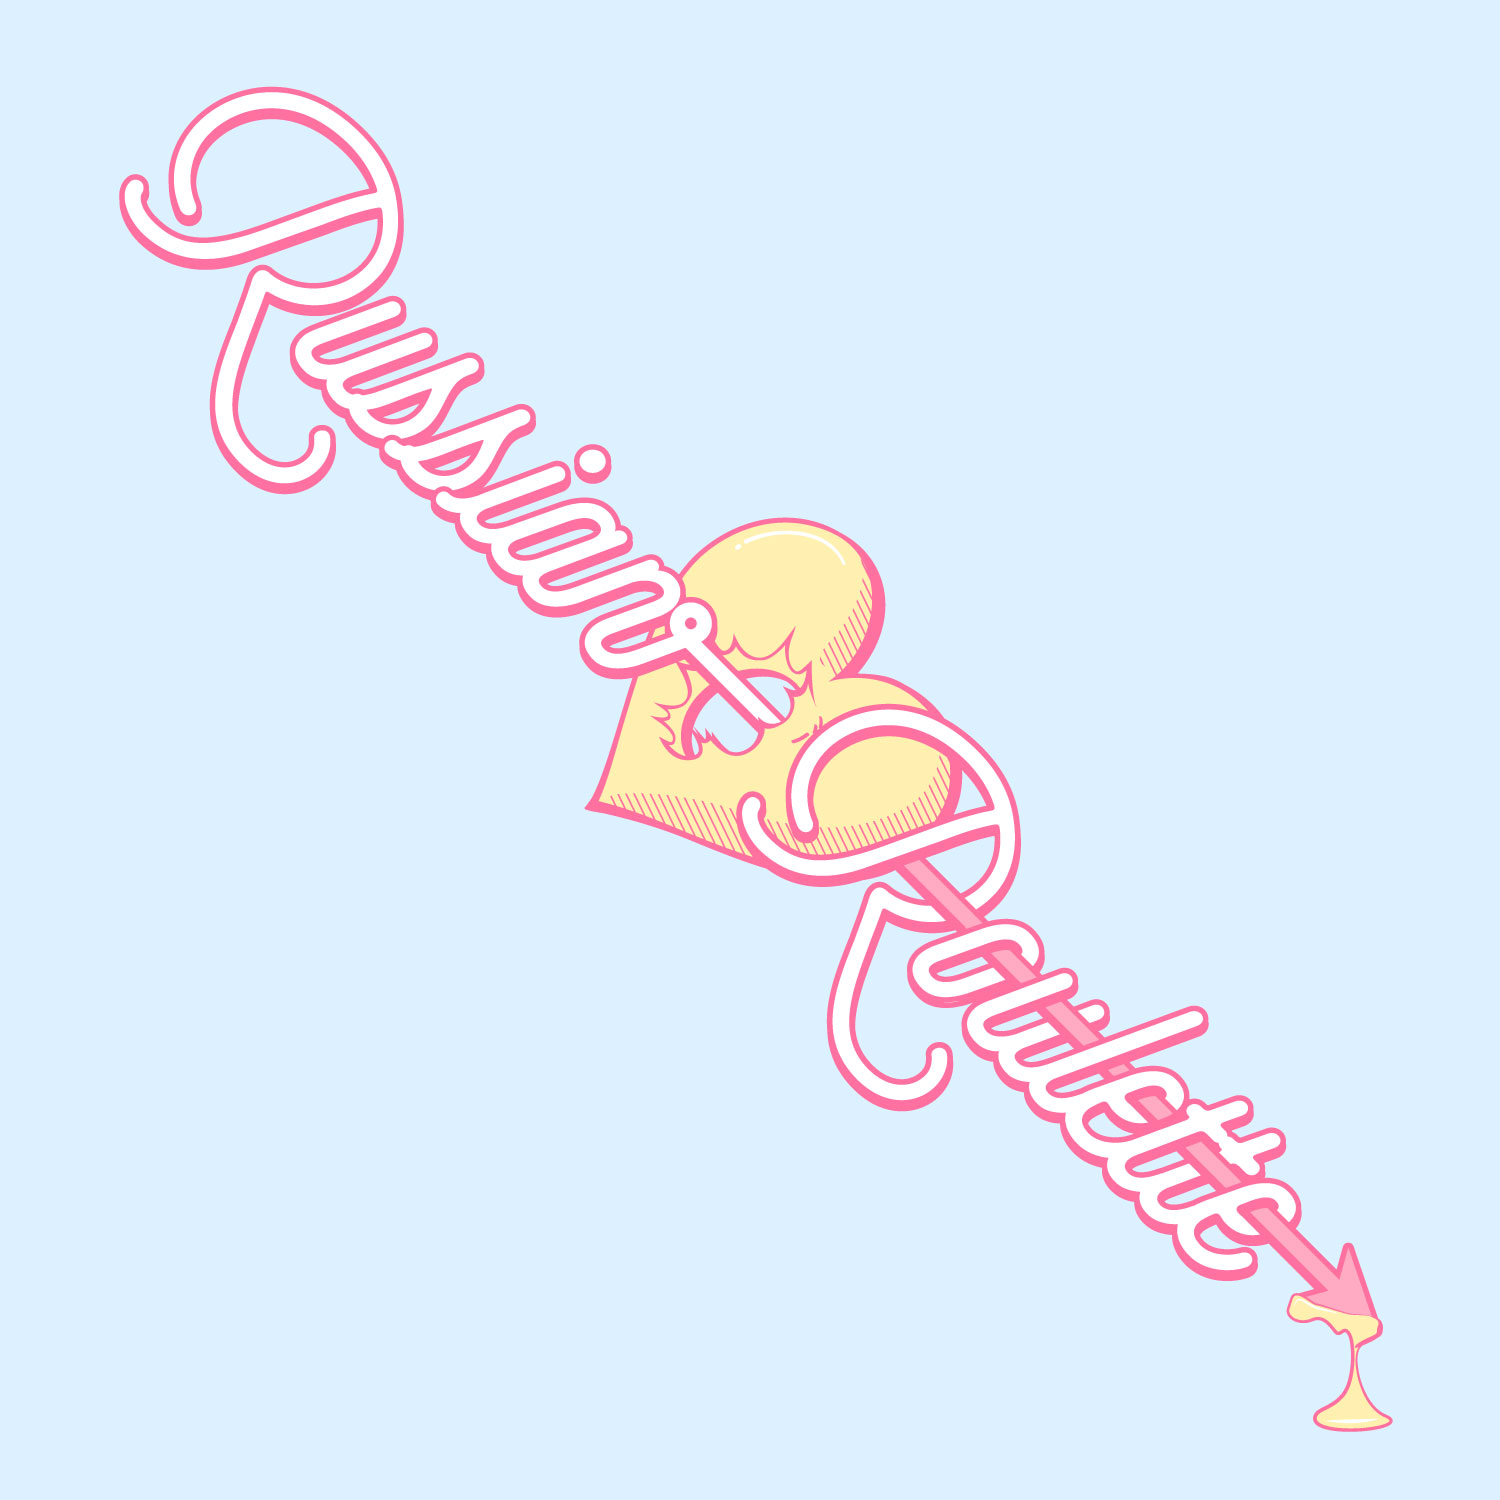 Red velvet russian roulette album cover roulette compresseur